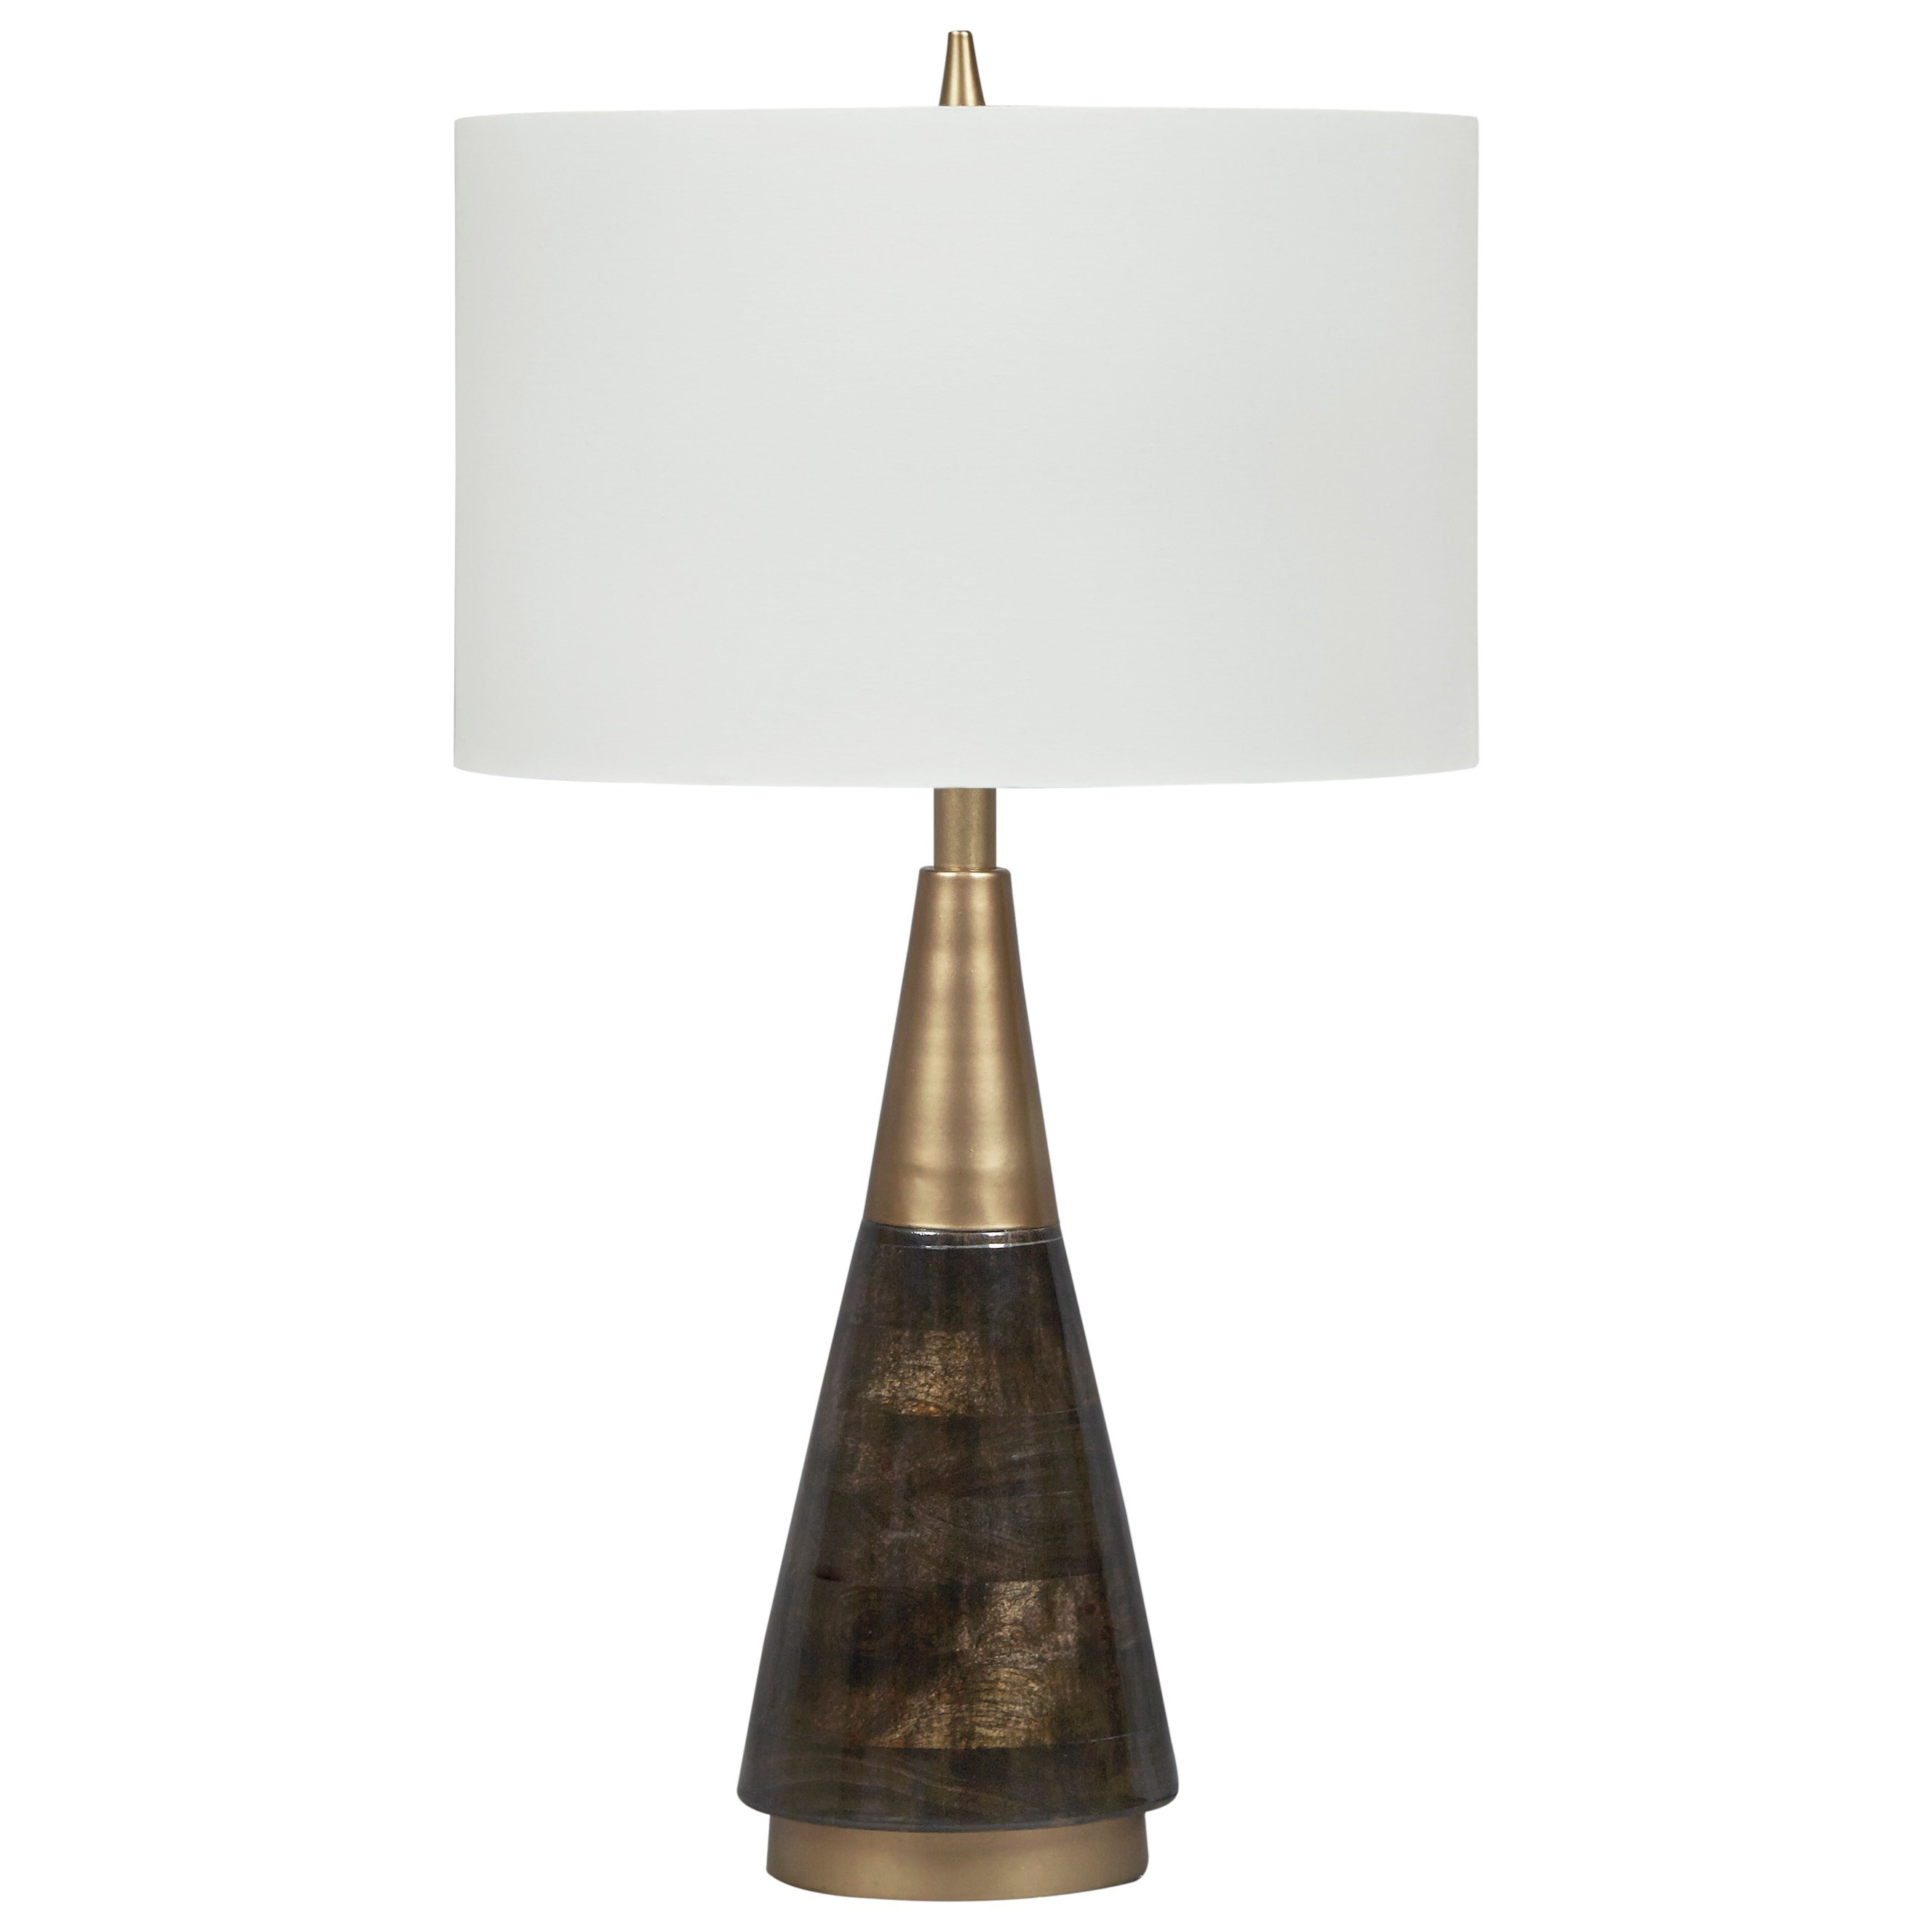 Lamps - Contemporary Lyrah Black/Gold Finish Wood Table Lamp by Signature at Walker's Furniture